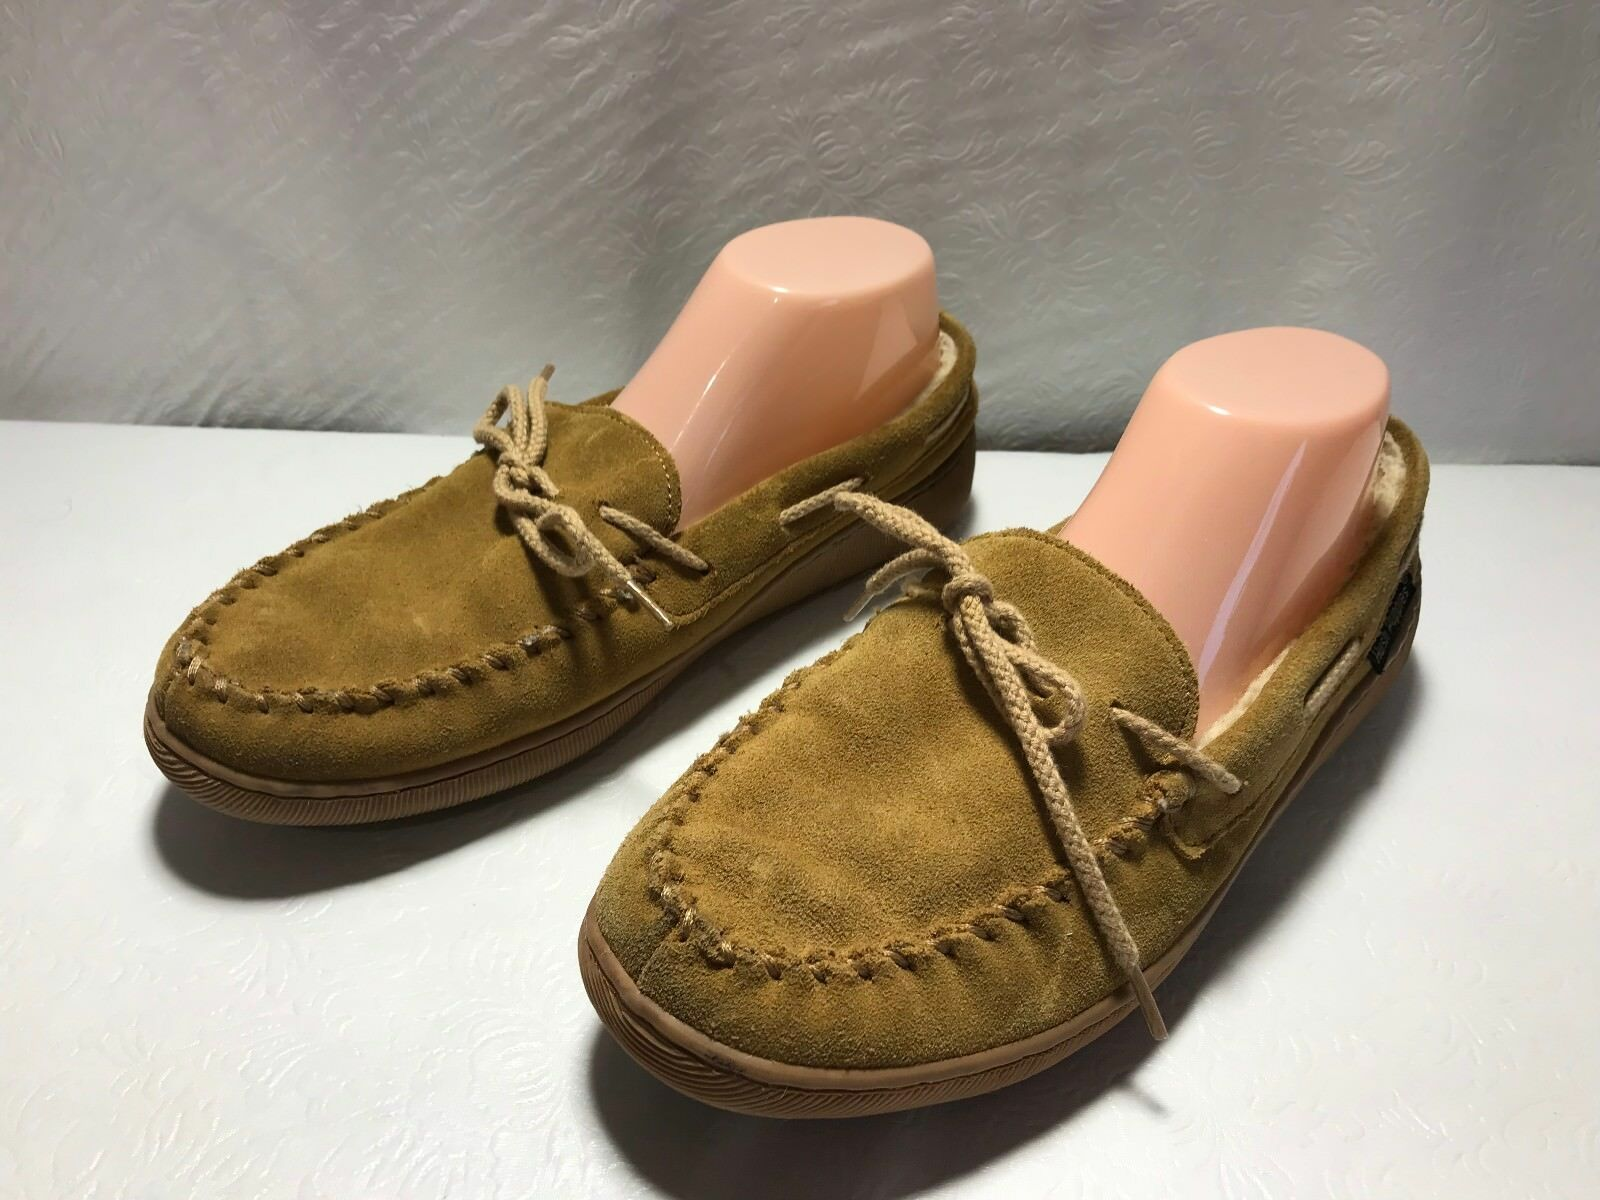 HUSH PUPPIES Women's Sz. 9 Suede Leather Faux Shearling Lined Slipper